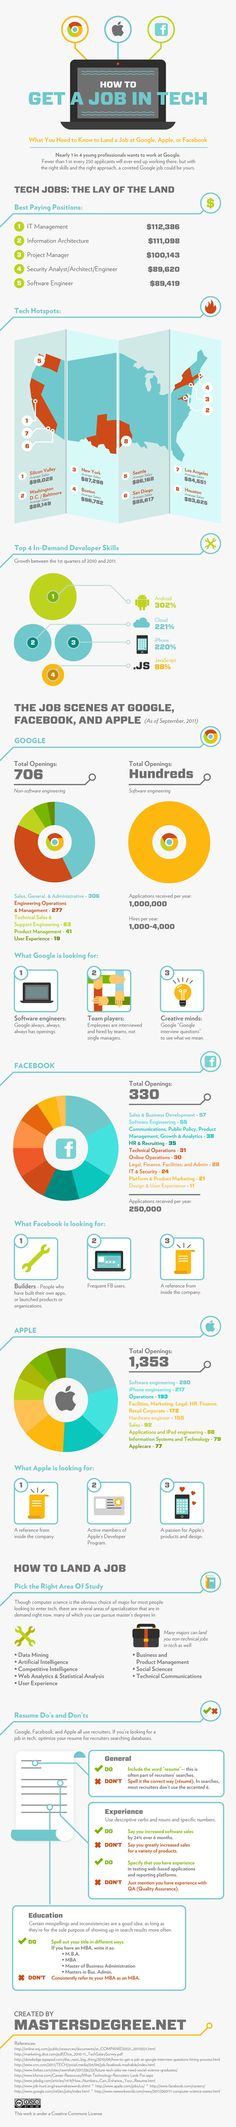 How To: Get A Job At Google, Apple or Facebook [Infographic]